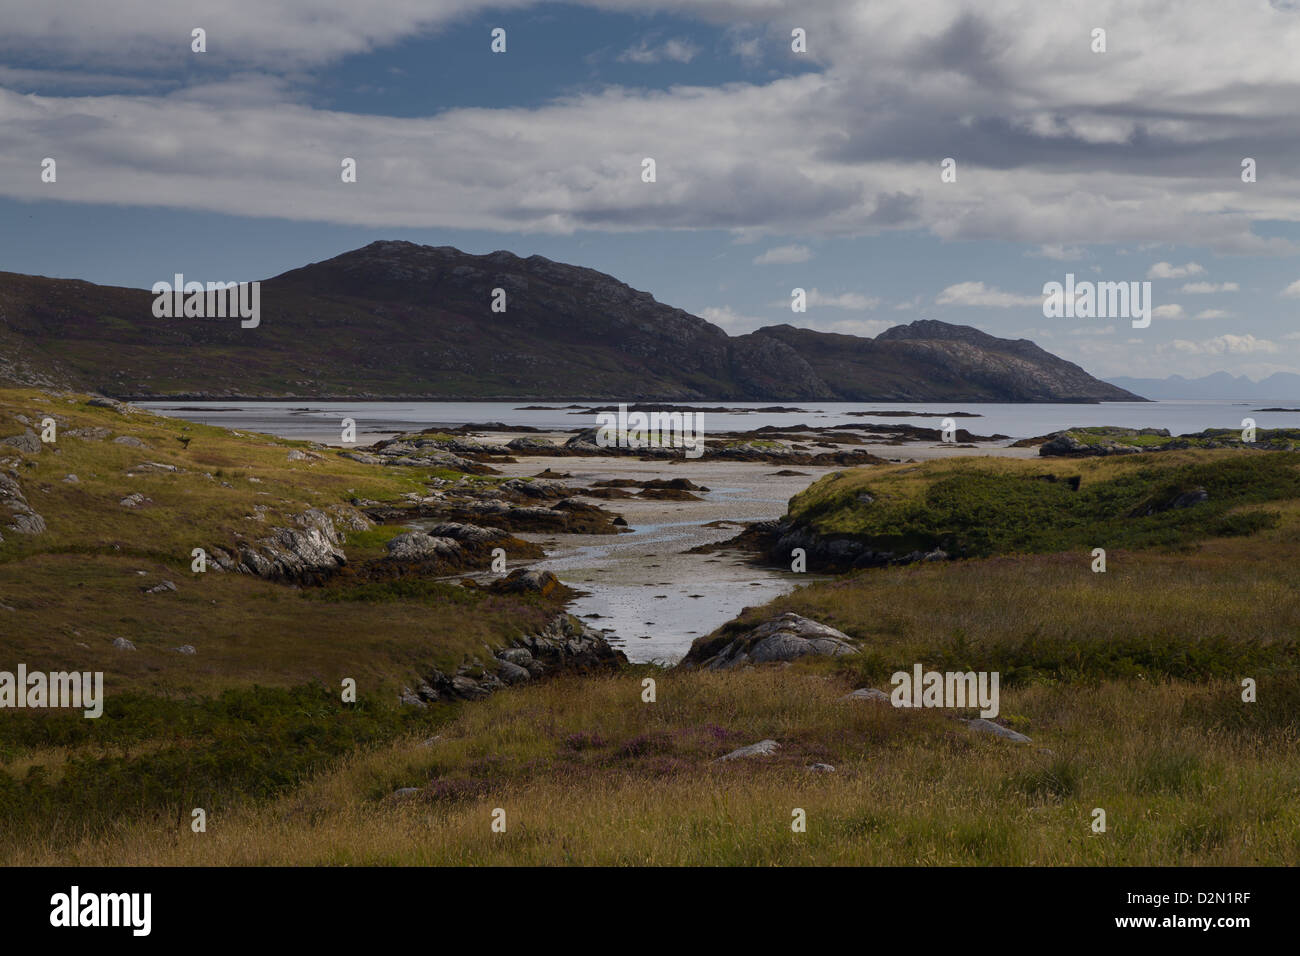 view from South Uist looking acrros the shoreline in the Outer Hebrides - Stock Image